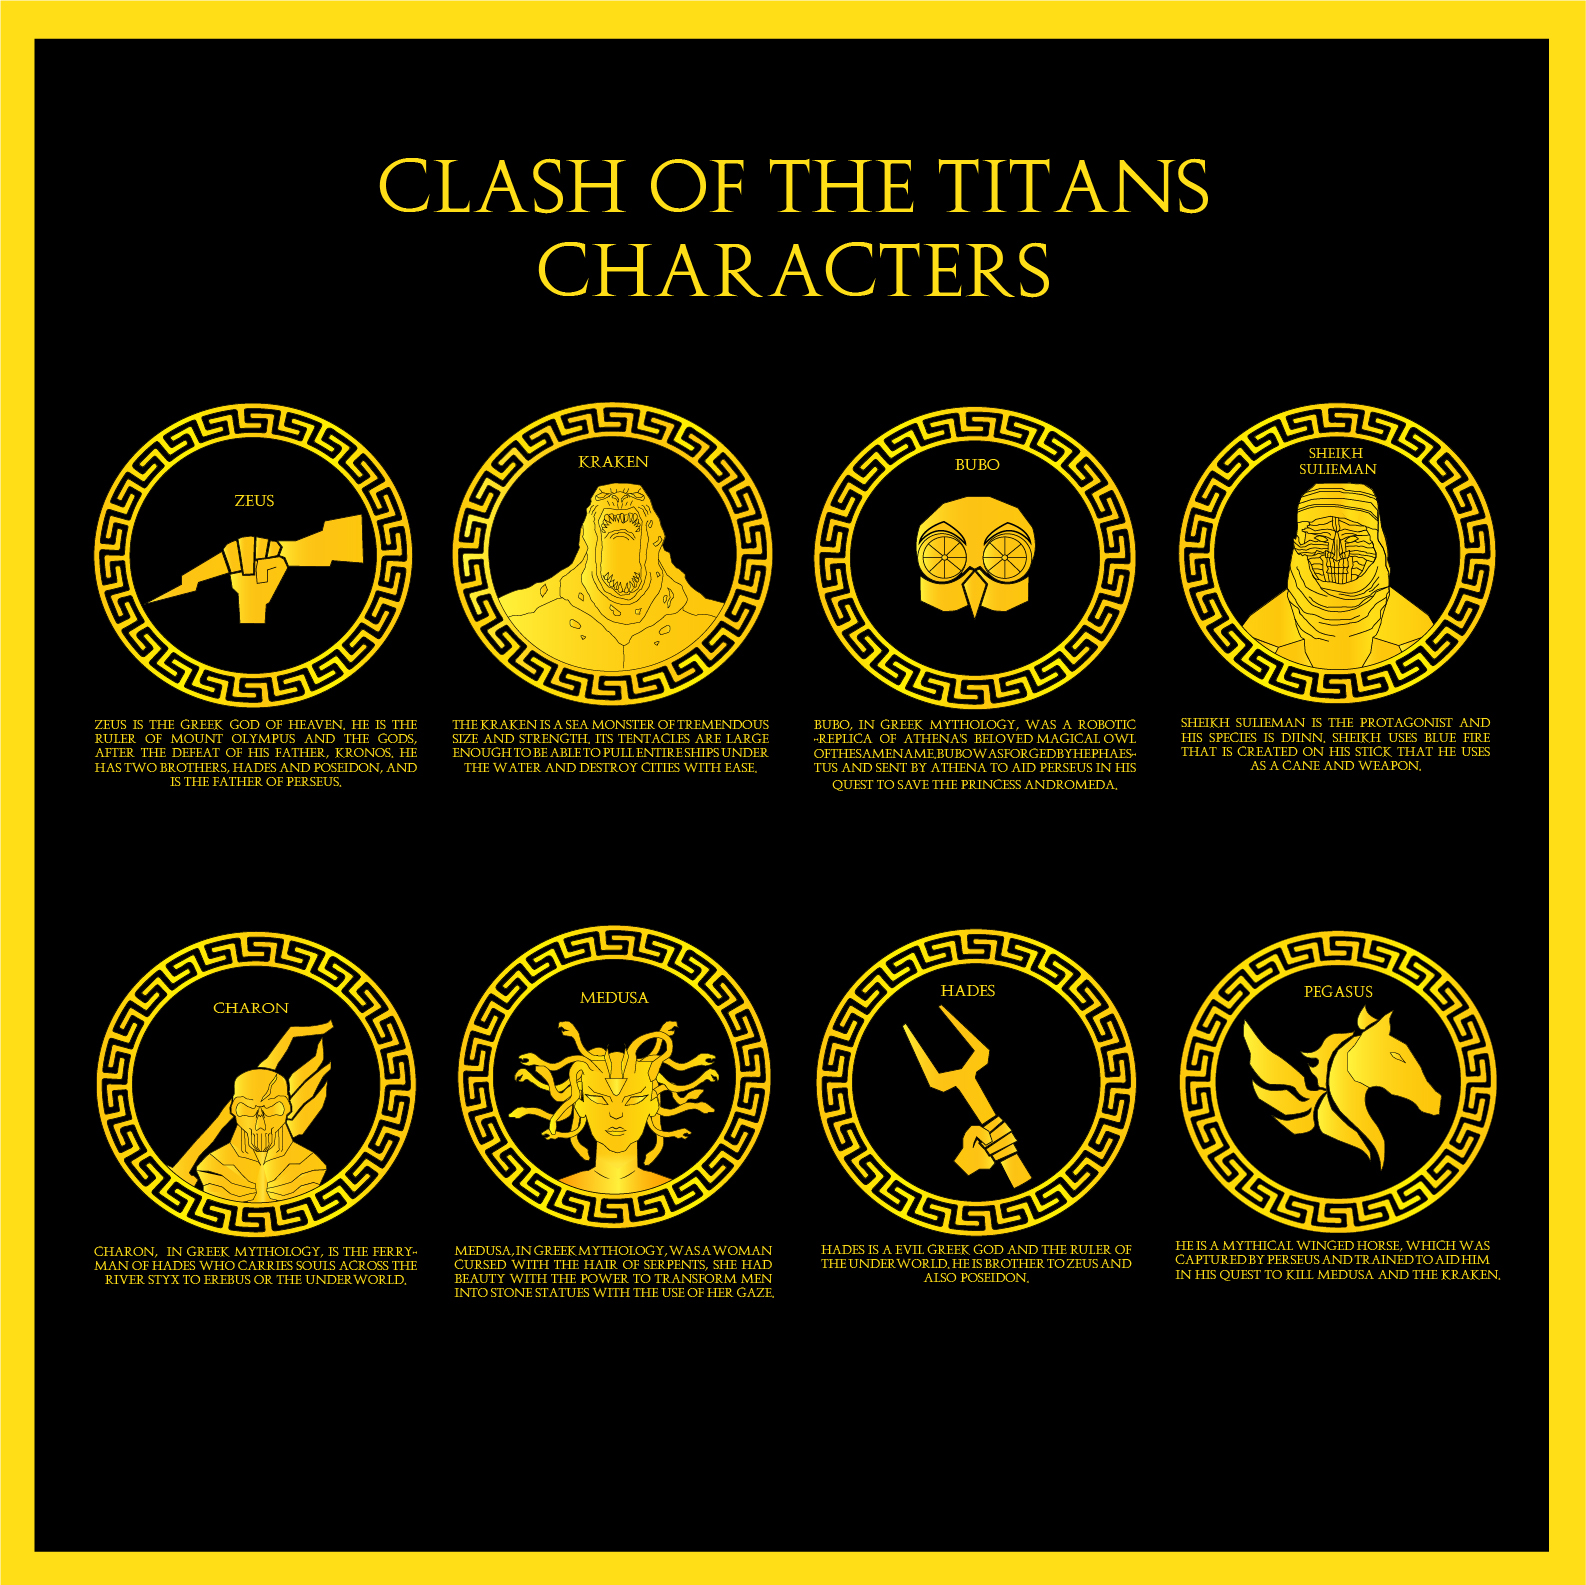 Greek titans symbols choice image symbols and meanings greek titans symbols gallery symbols and meanings clash of the titans logo on behance biocorpaavc gallery buycottarizona Images